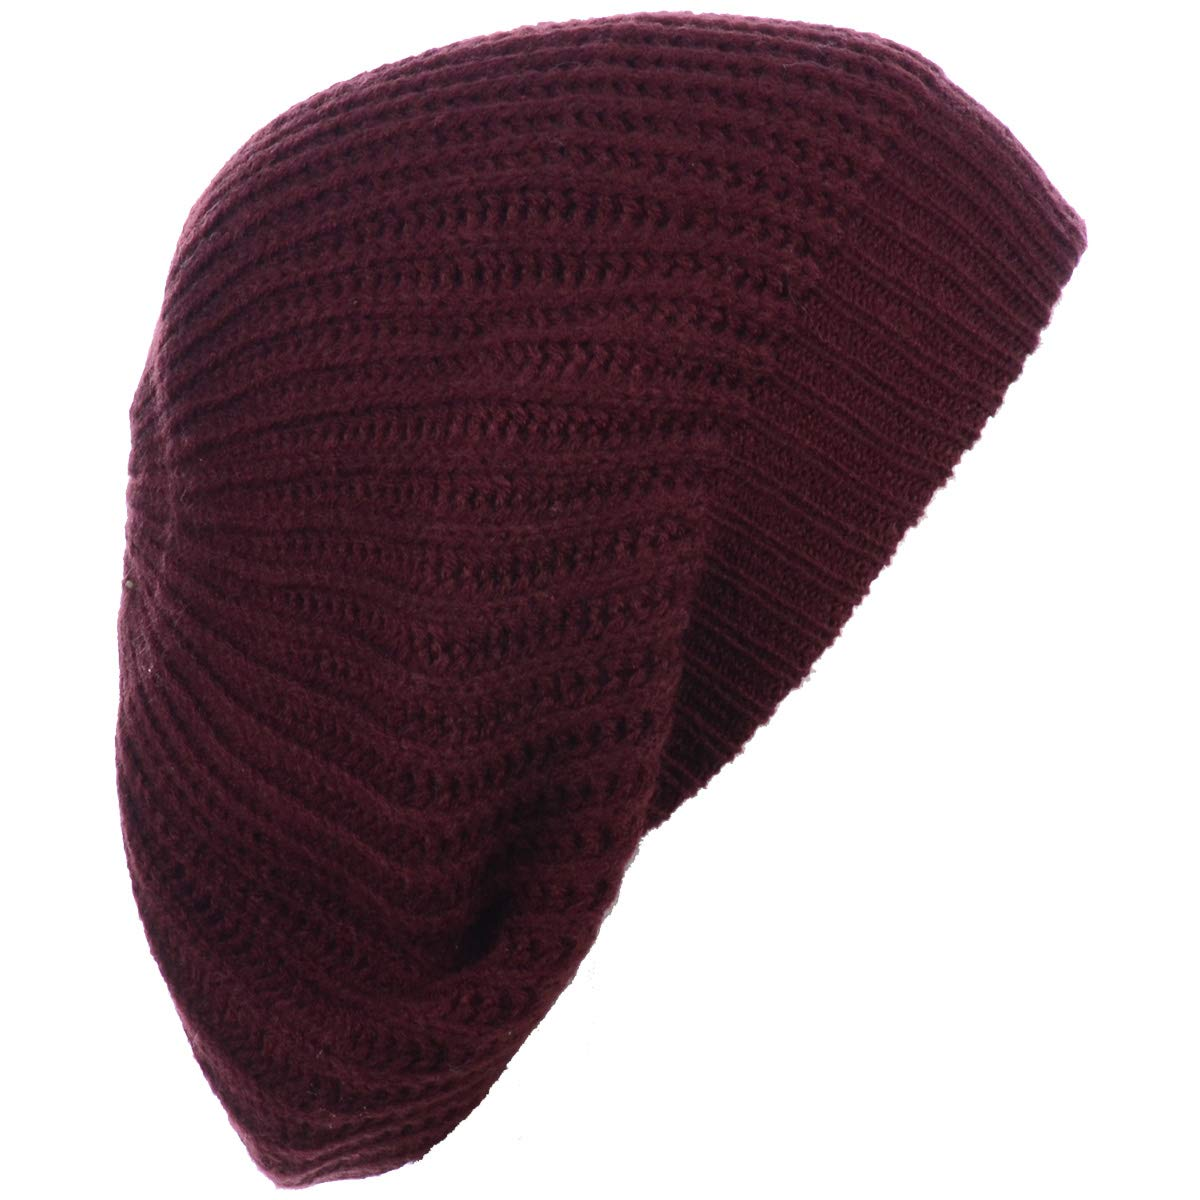 BYOS Ladies Winter Solid Chic Slouchy Ribbed Crochet Knit Beret Beanie Hat W/WO Flower Adornment, Soft Touch (Wine) by Be Your Own Style